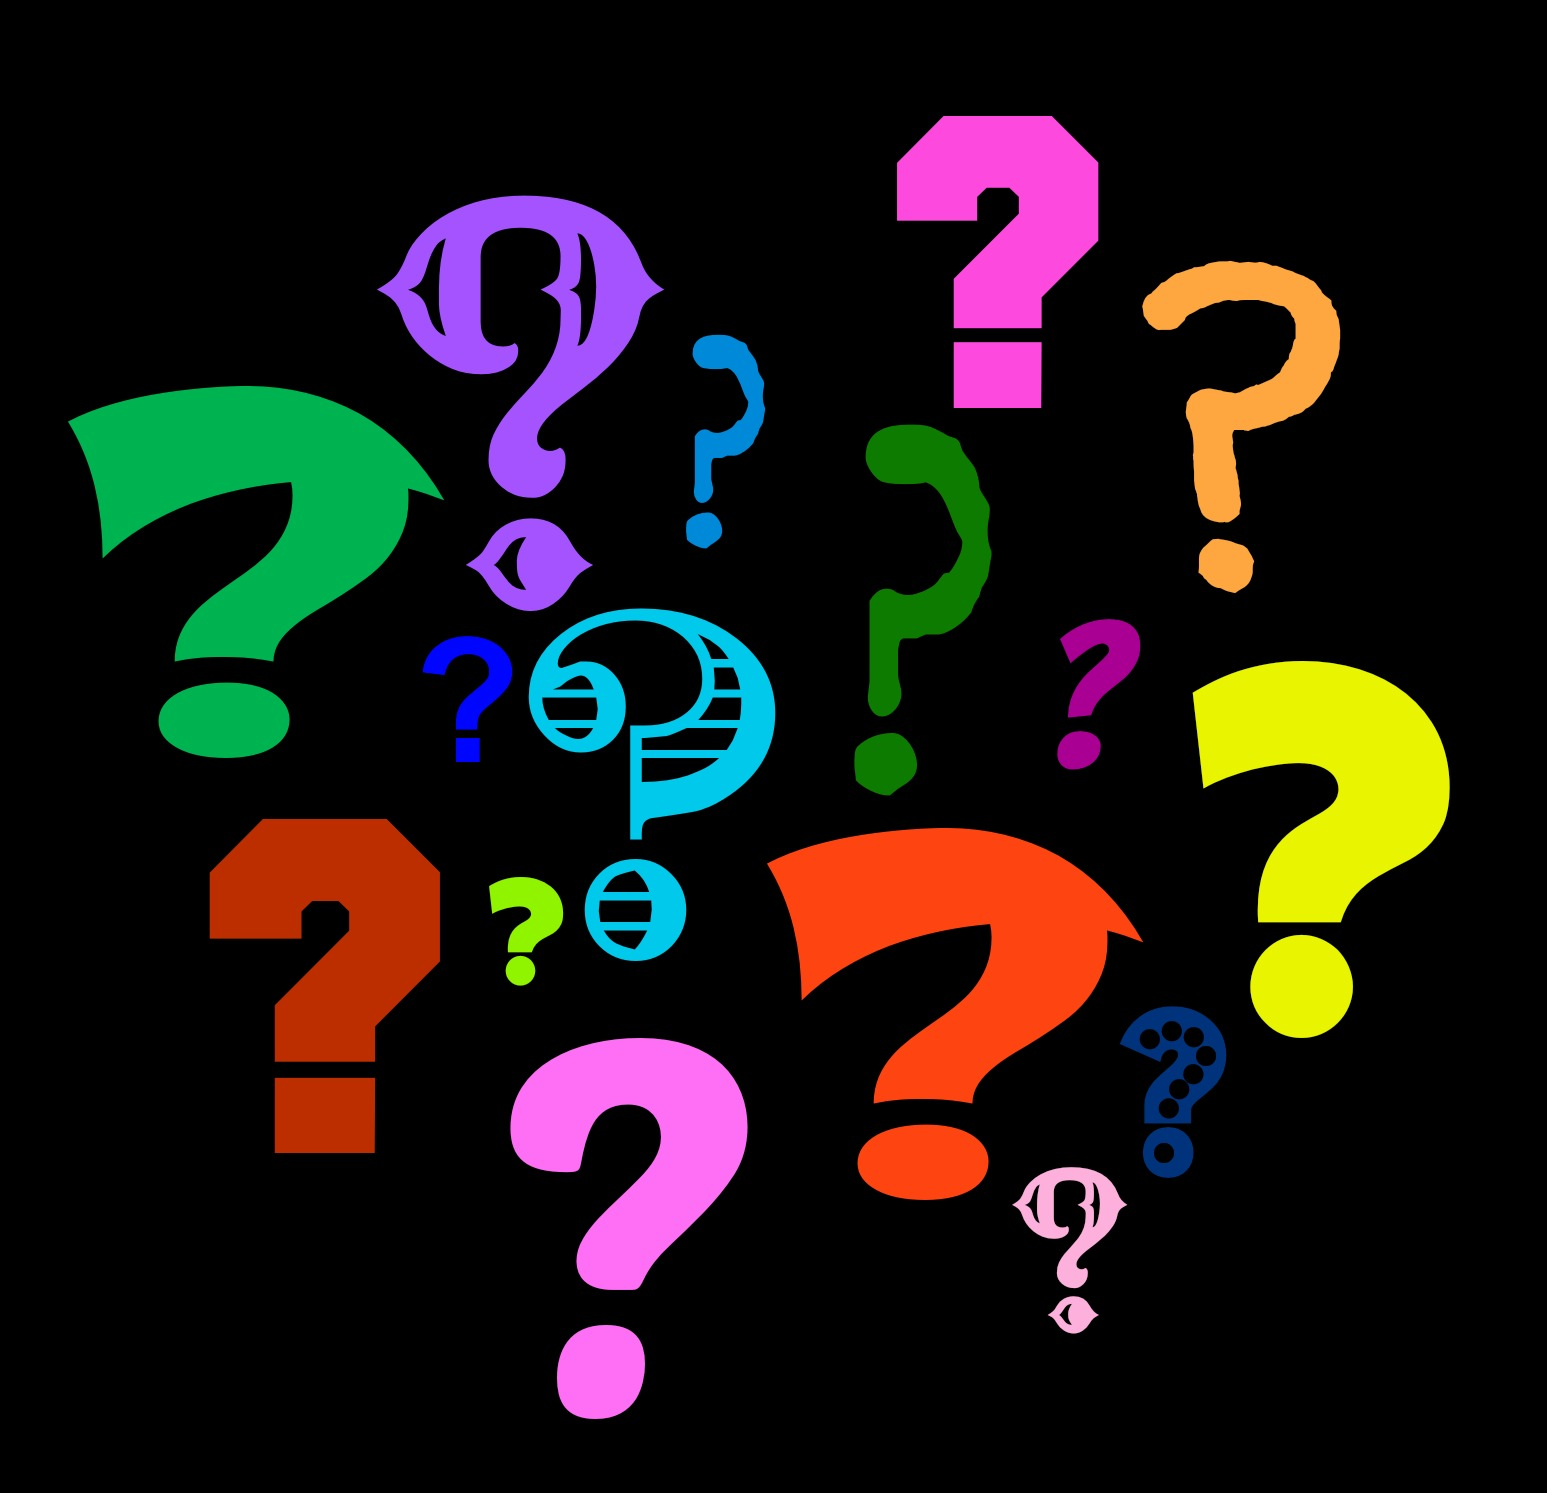 Graphic of different colored question marks on a black background